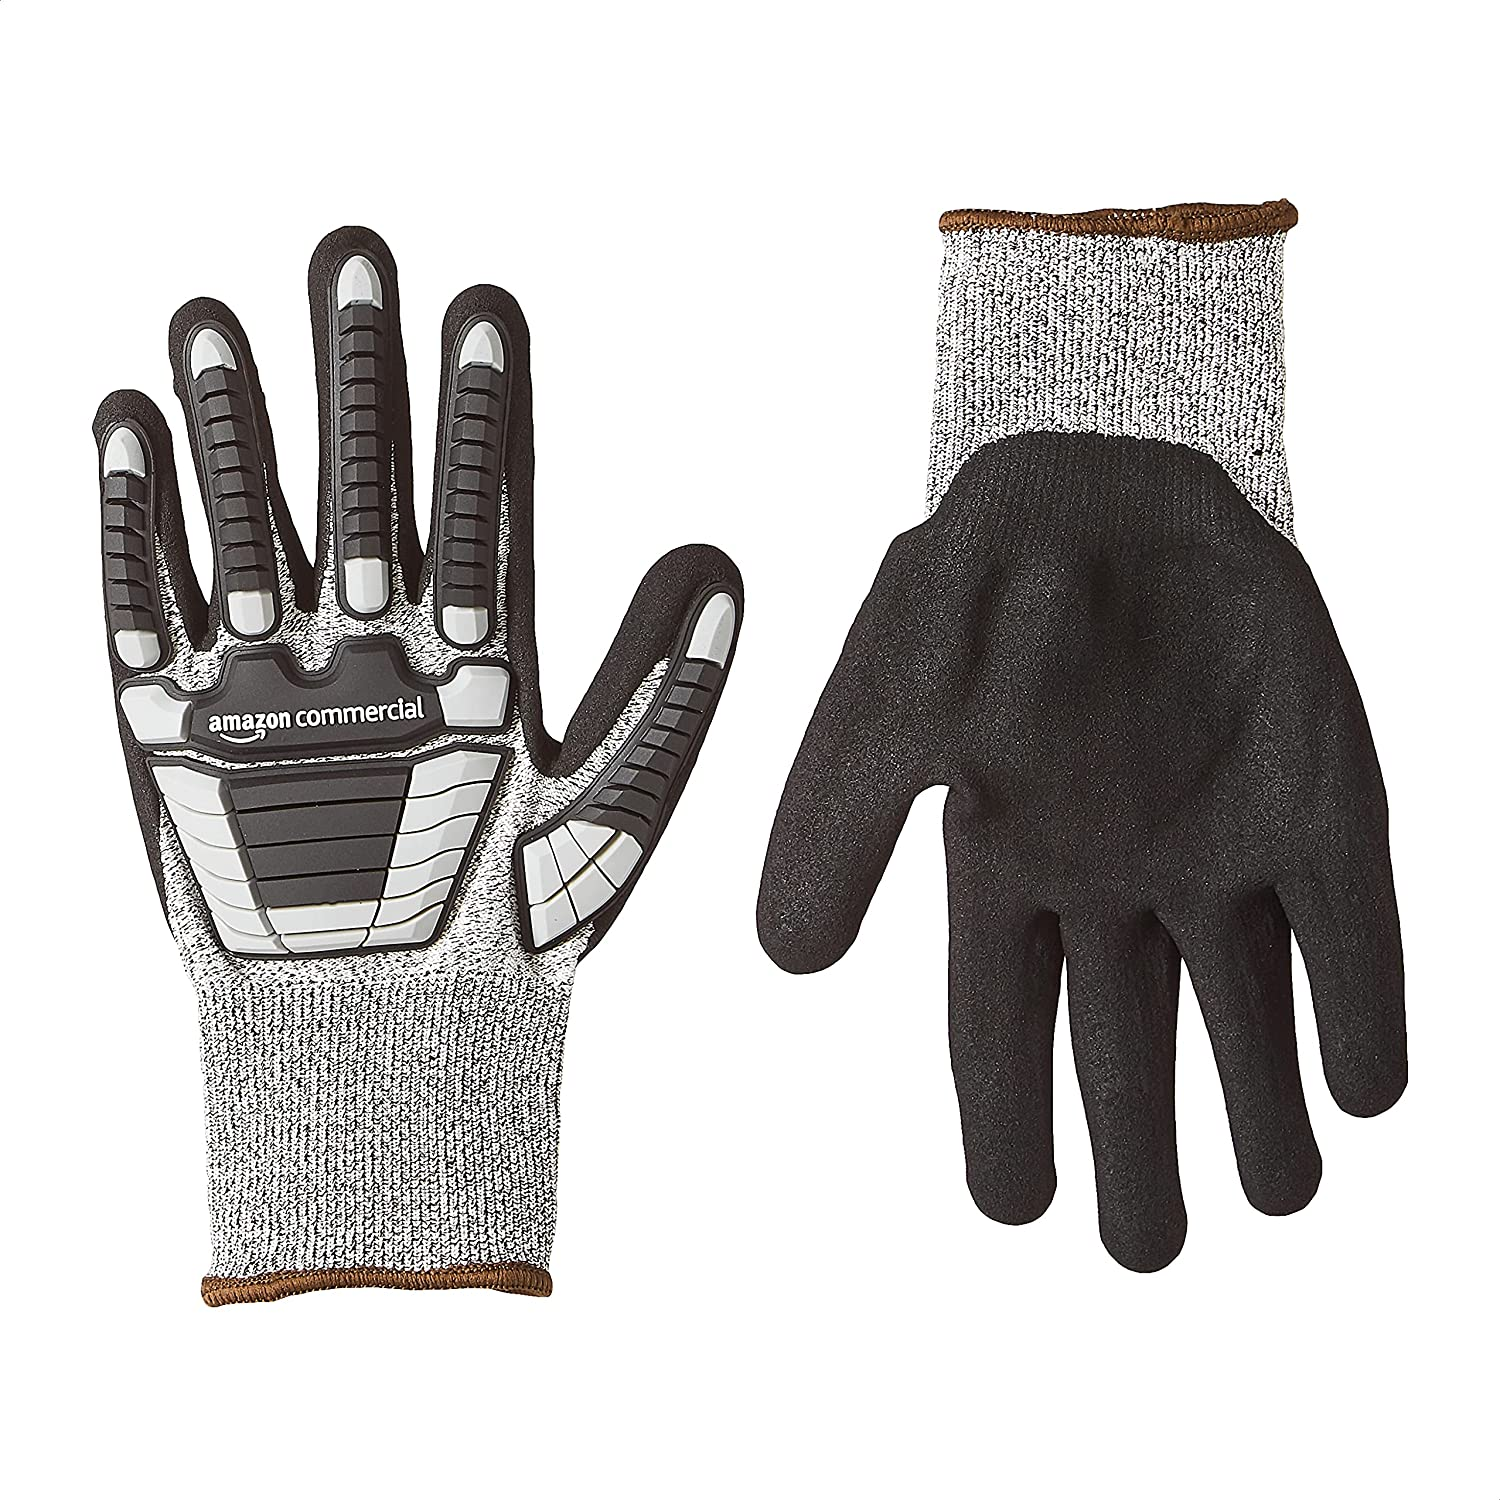 AmazonCommercial 13G SilverSilk & Sandy Nitrile Gloves with Impact Protection (Grey/Black), Size L, 3-Pairs